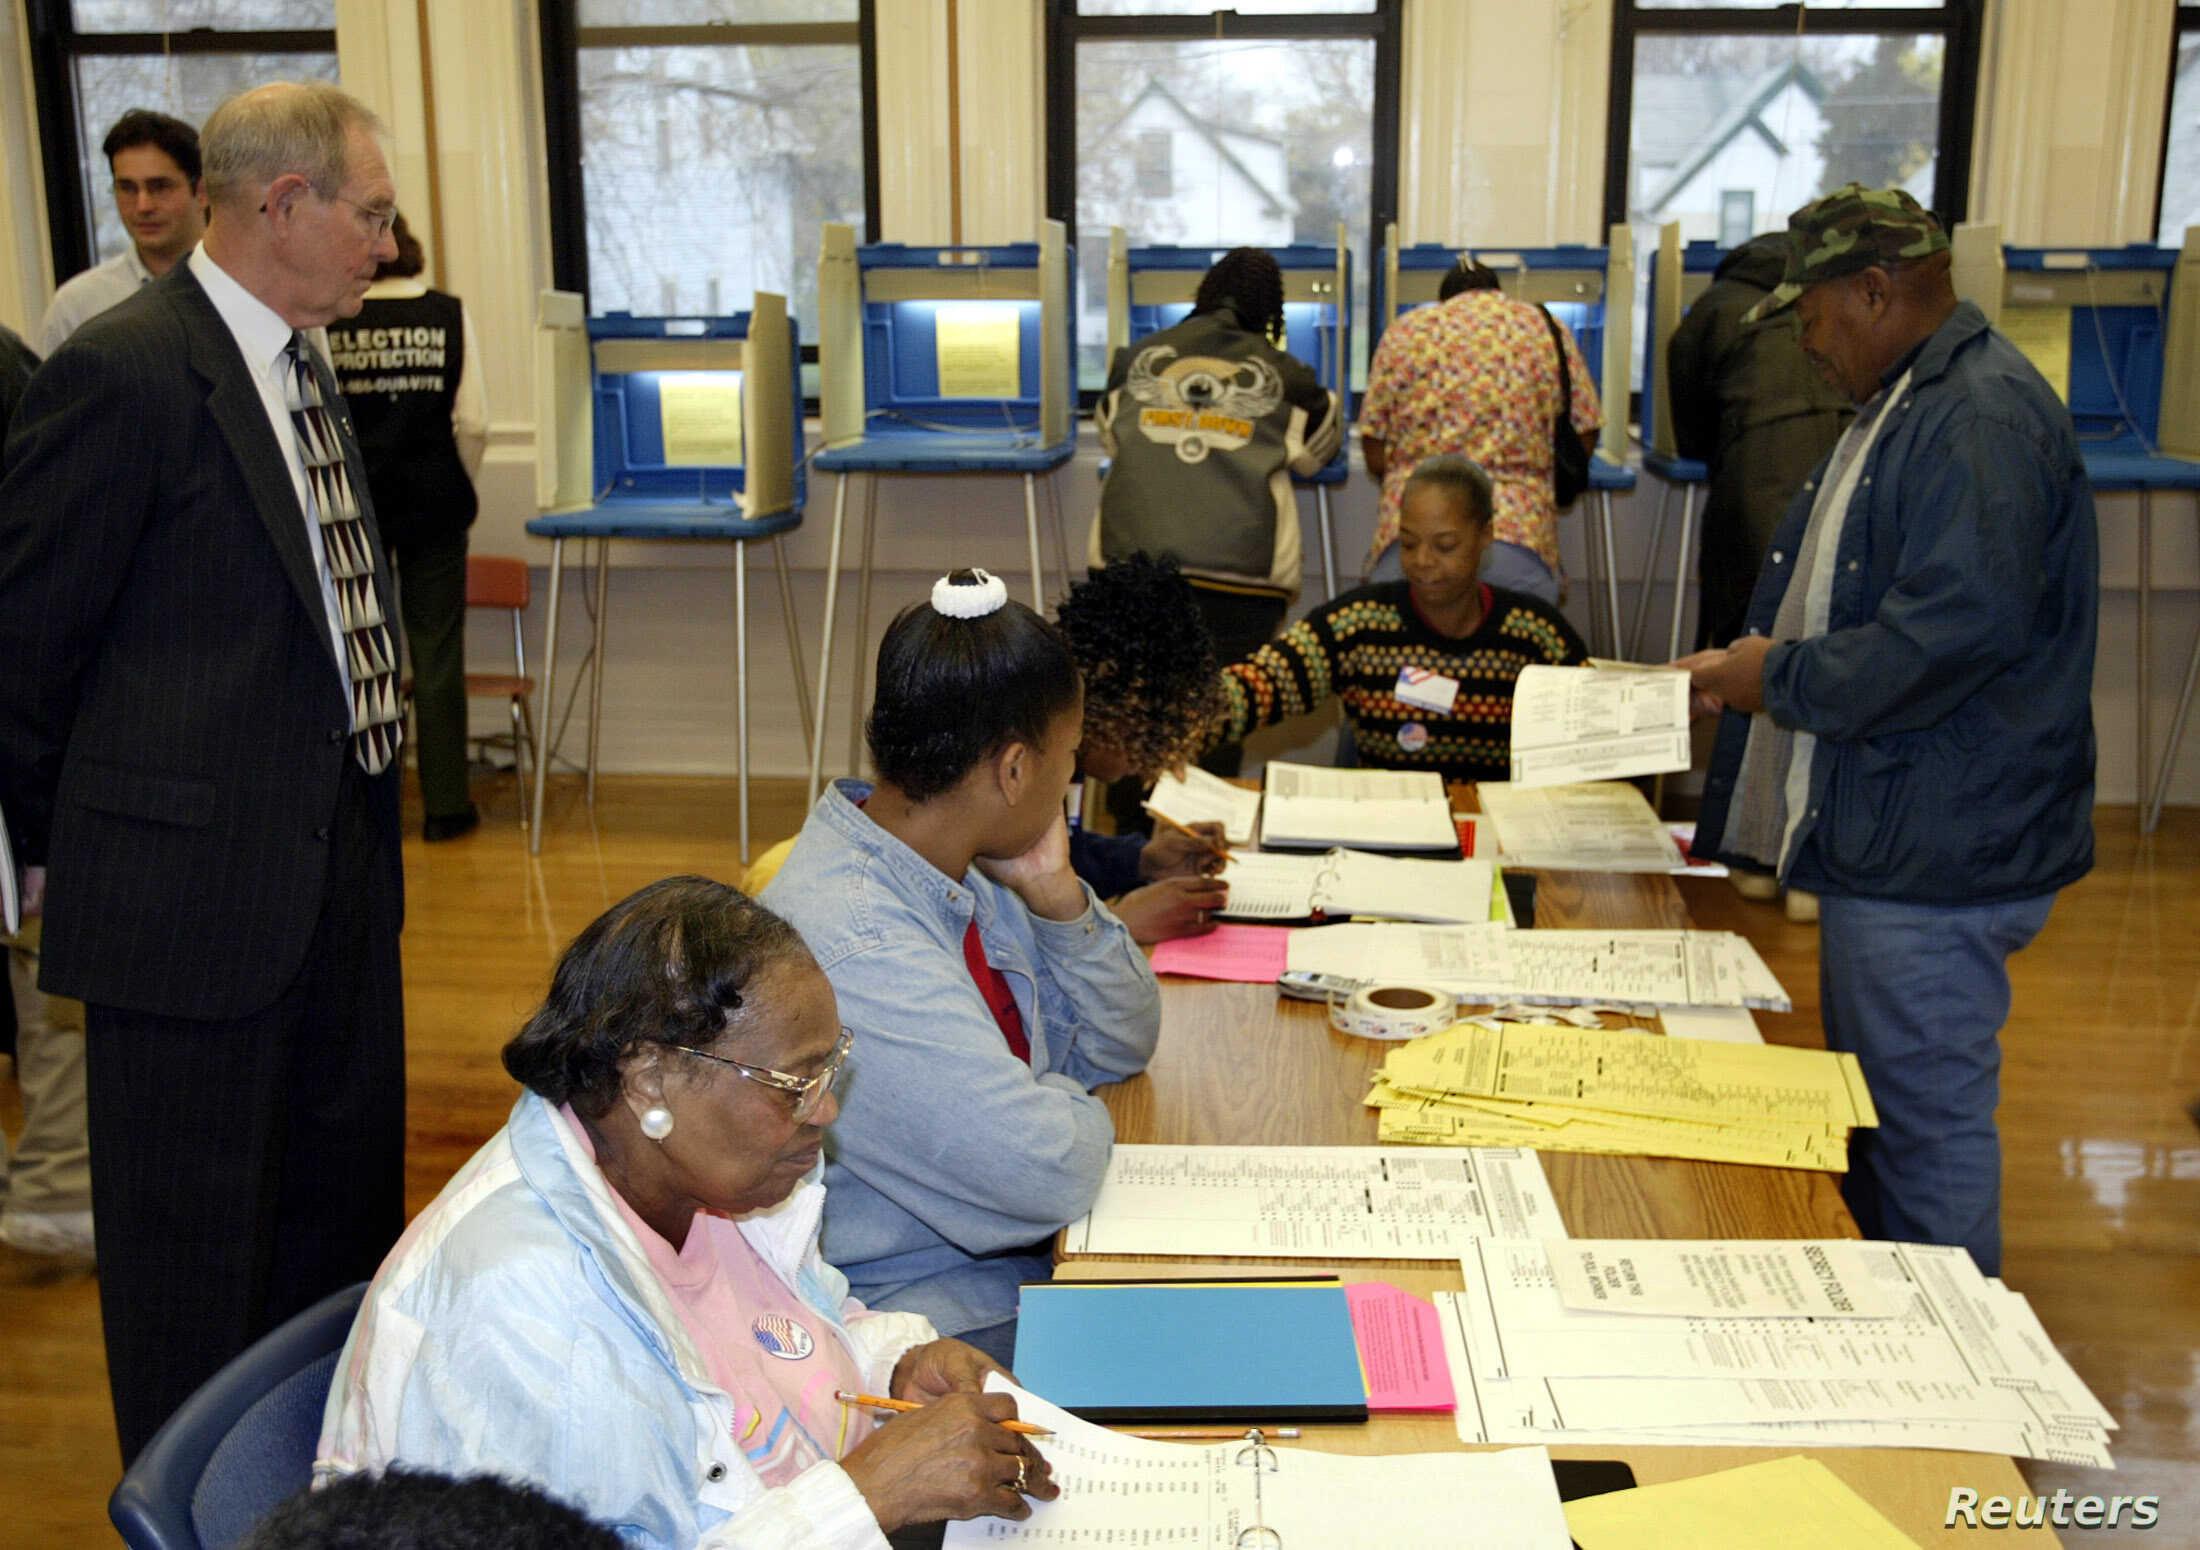 FILE - John Spindler, a lawyer representing the Republican National Committee, watches as poll workers issue a ballot to Tommie Rash, right, at Hopkins Street School on the north side of Milwaukee, Wis., Nov. 2, 2004.